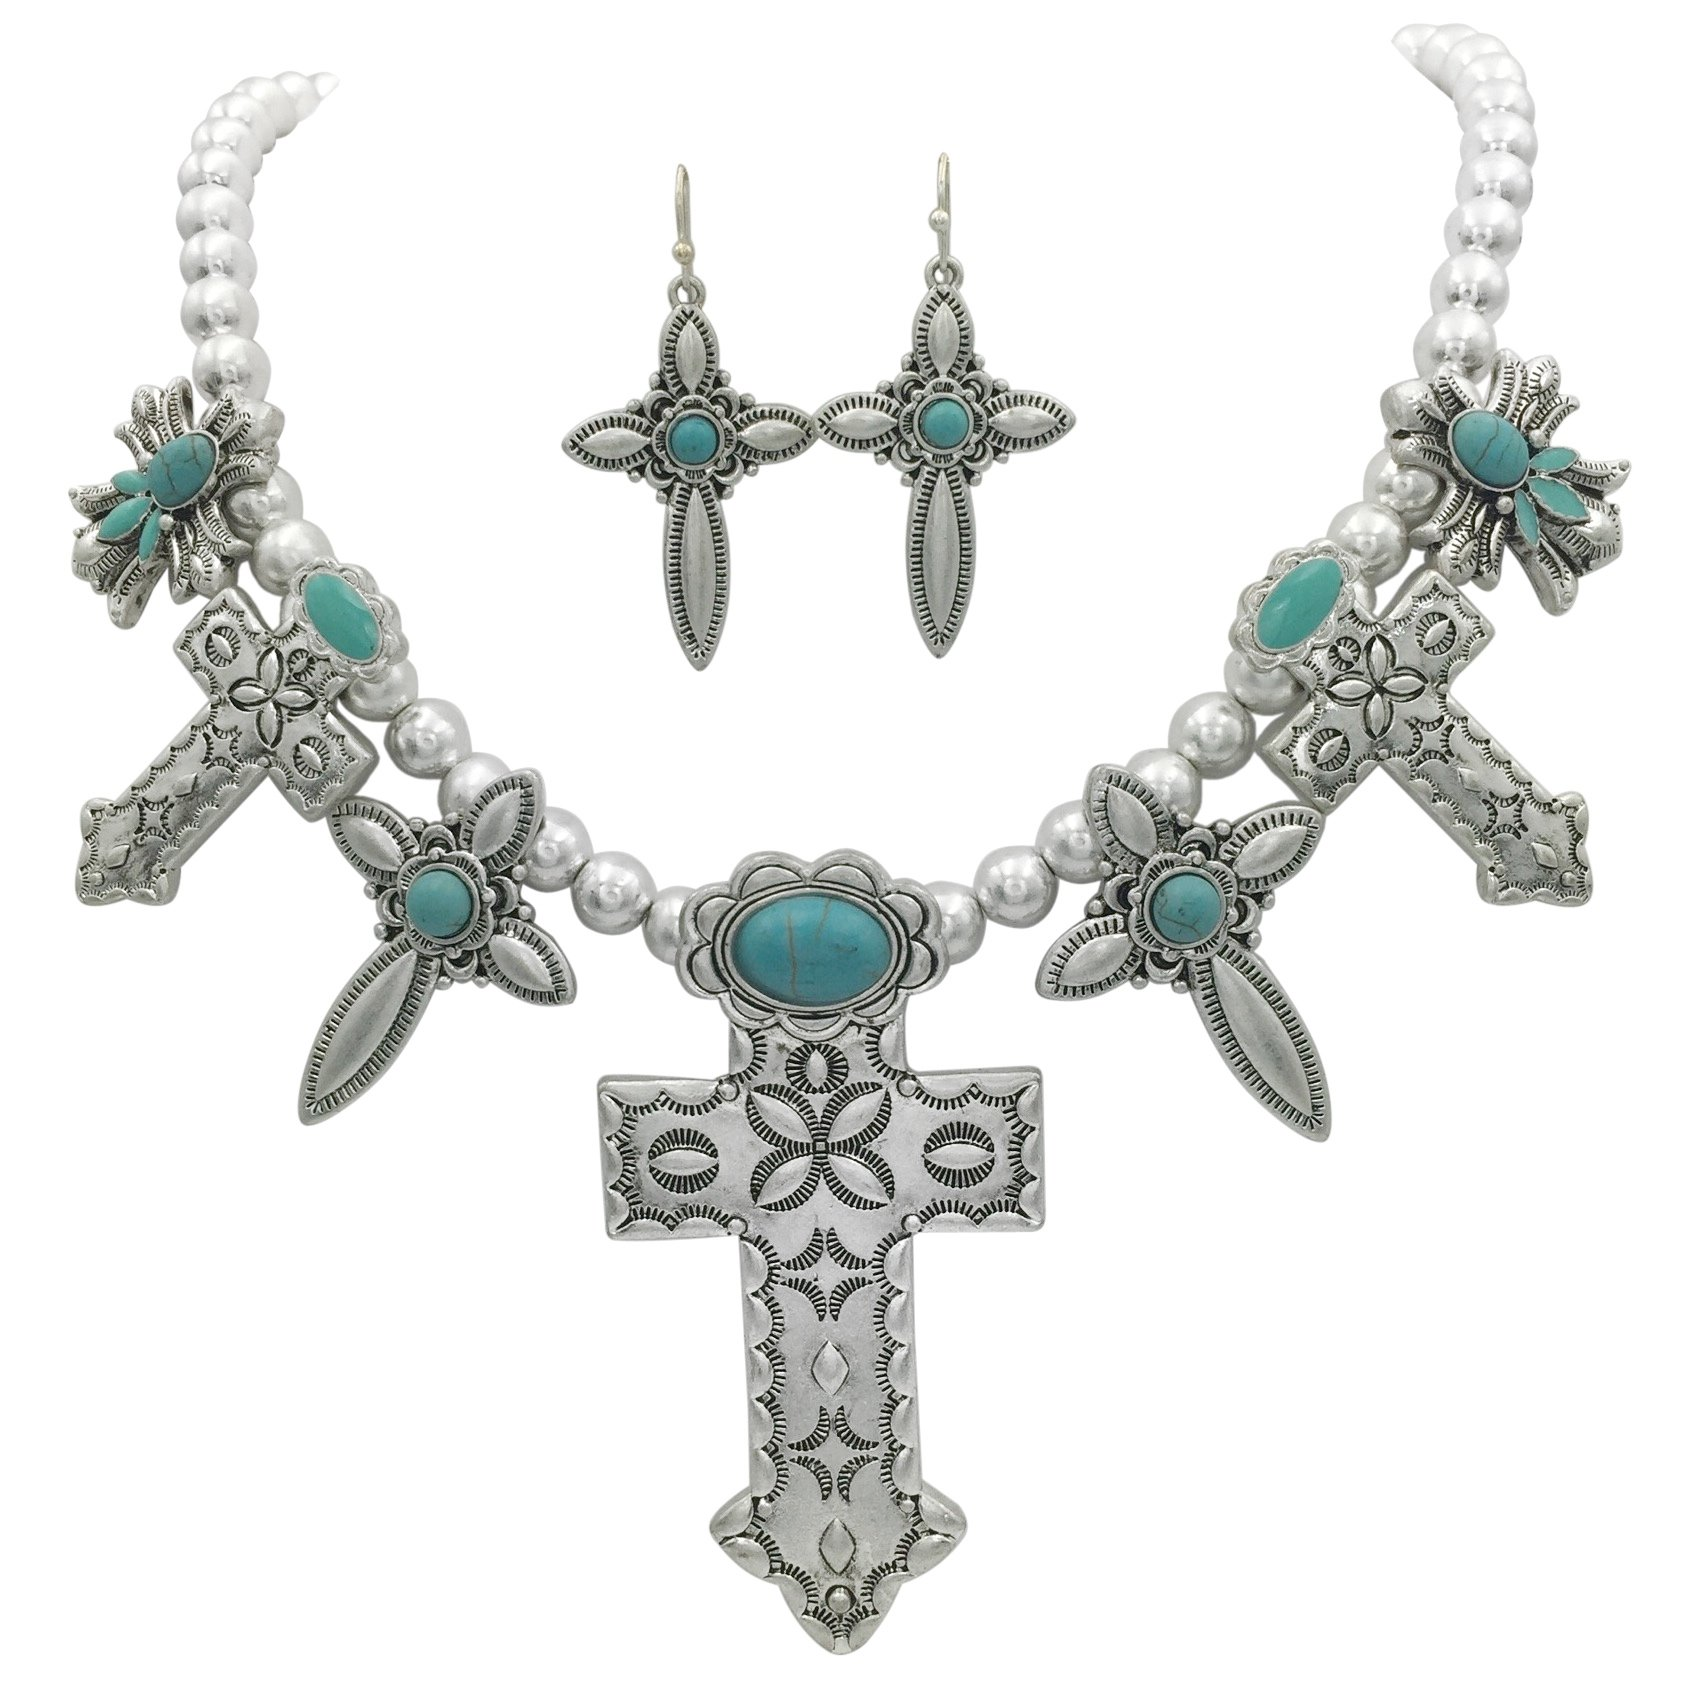 7 Cross Western Style Imitation Turquoise Necklace & Earrings Set (Silver Tone)